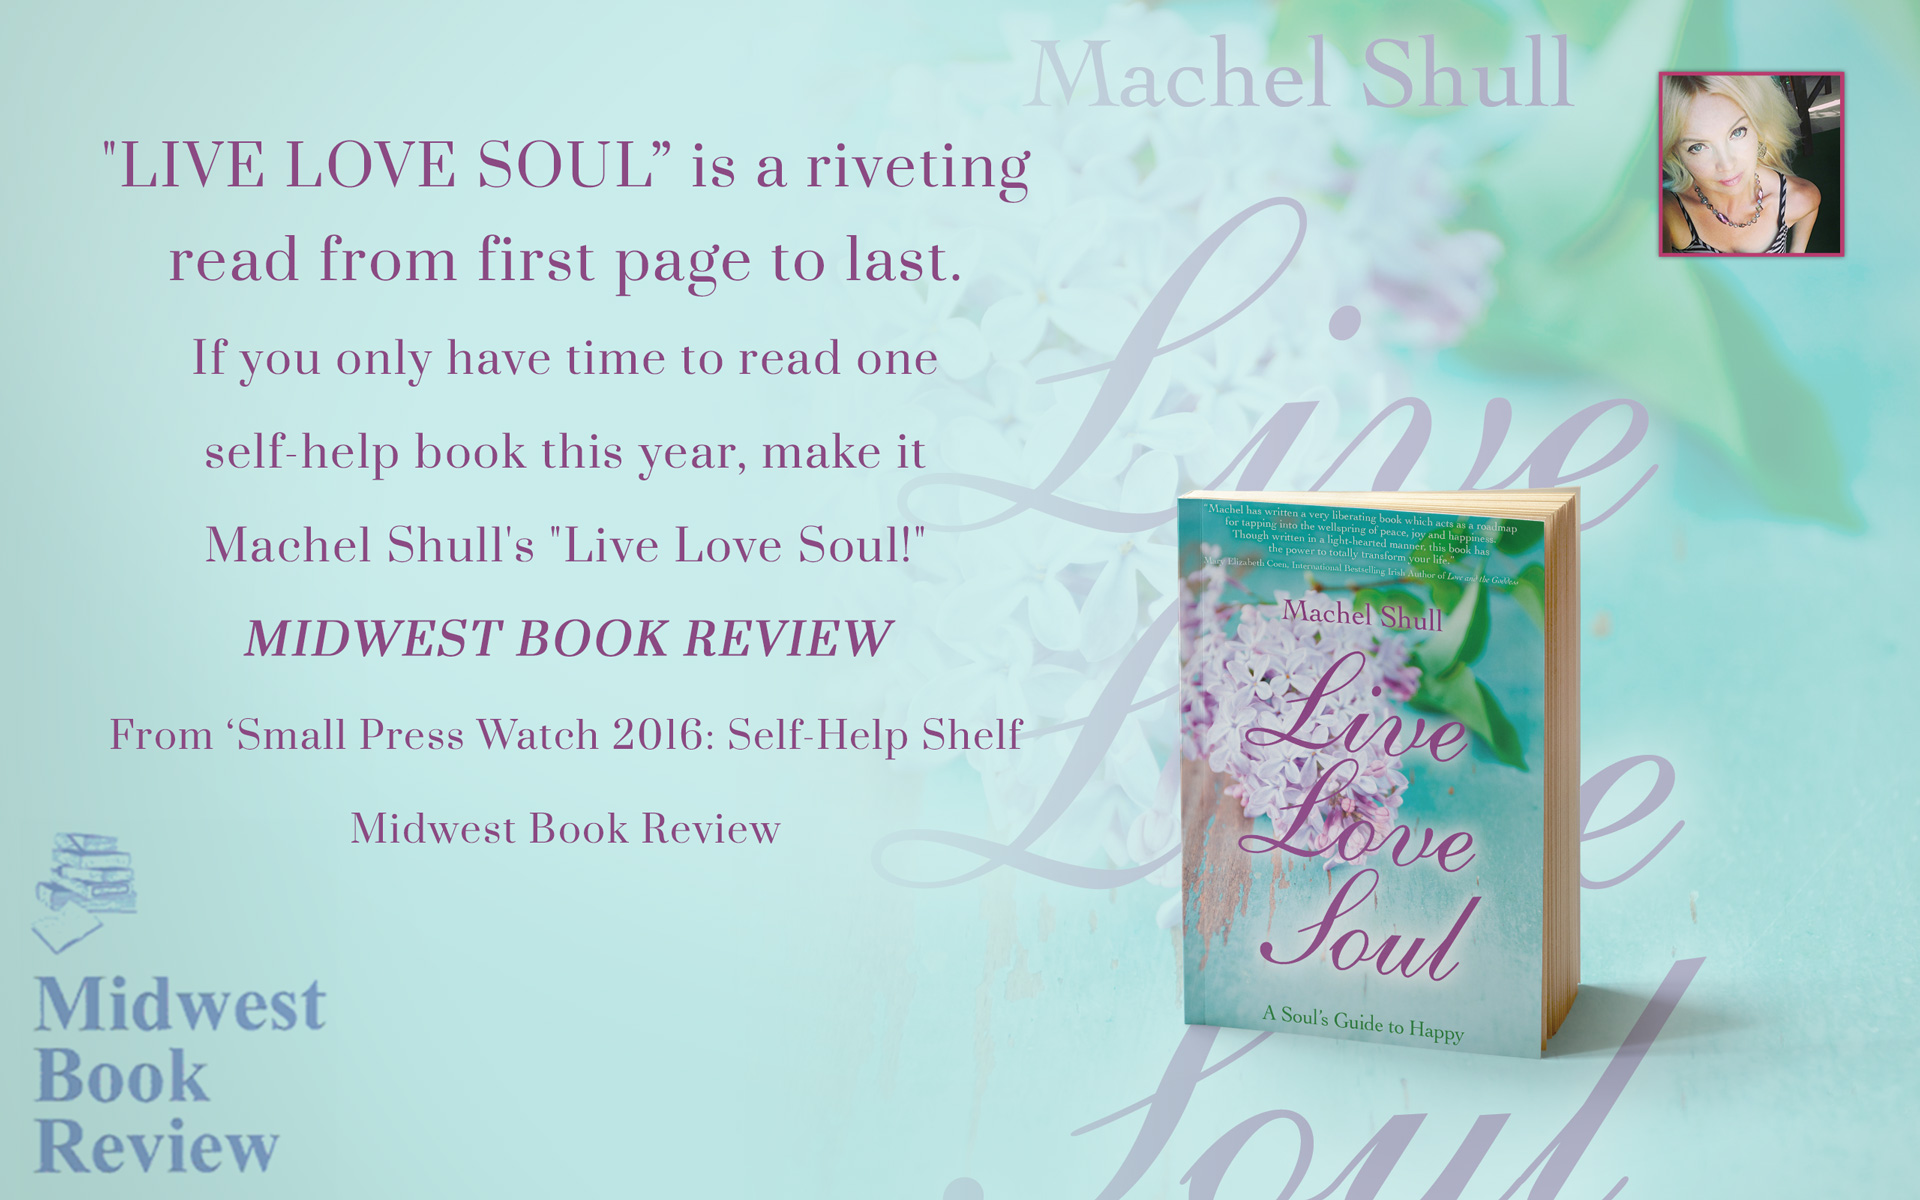 Machel-Shull-books-MIDWEST-REVIEW-2106